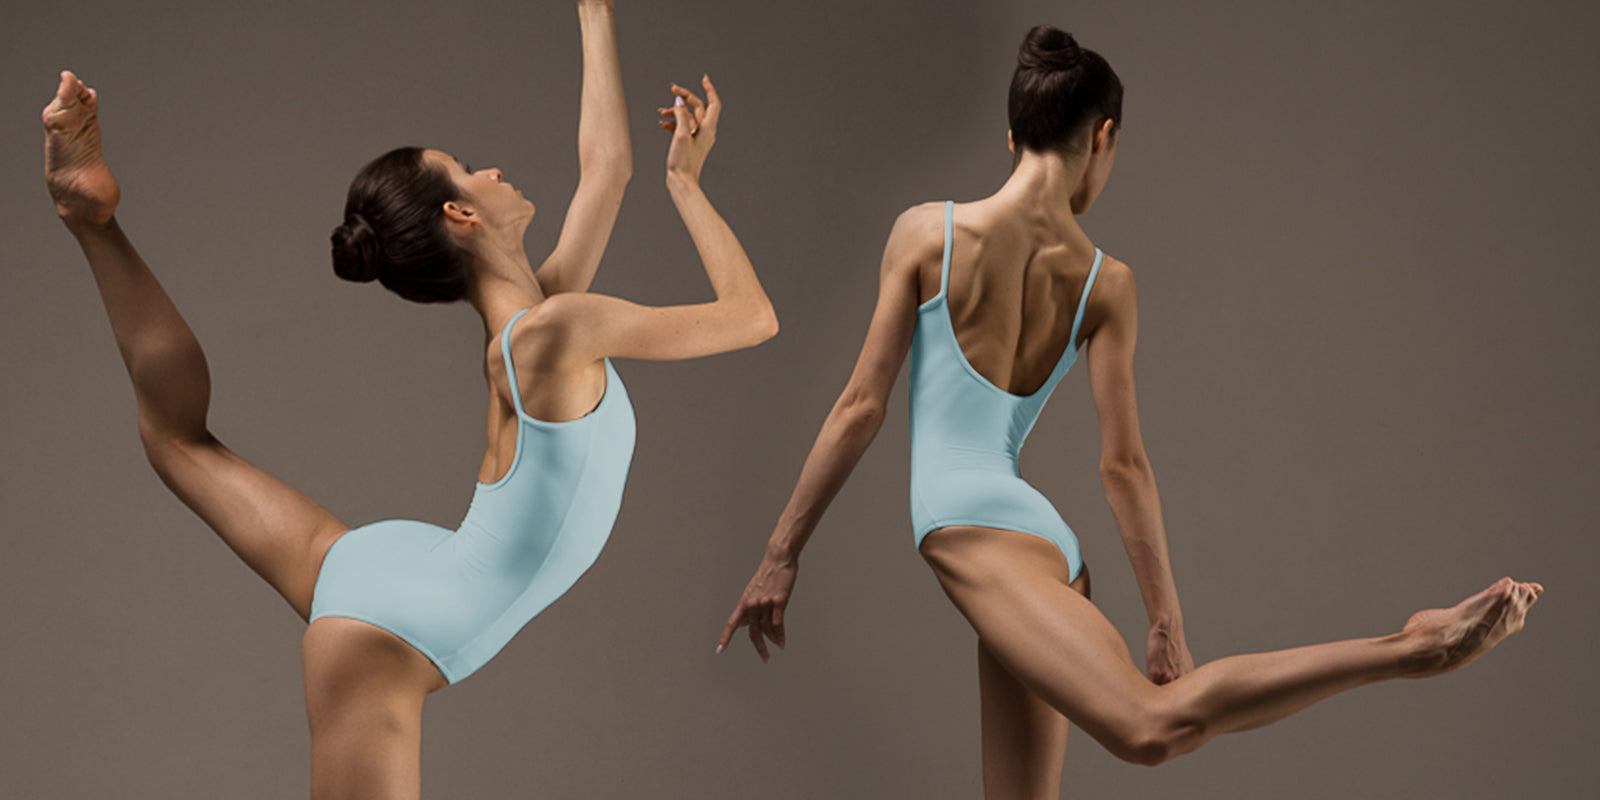 Ballet dancer Maria Khoreva dancing in the studio wearing the BLOCH Sissone leotard in Pastel Blue